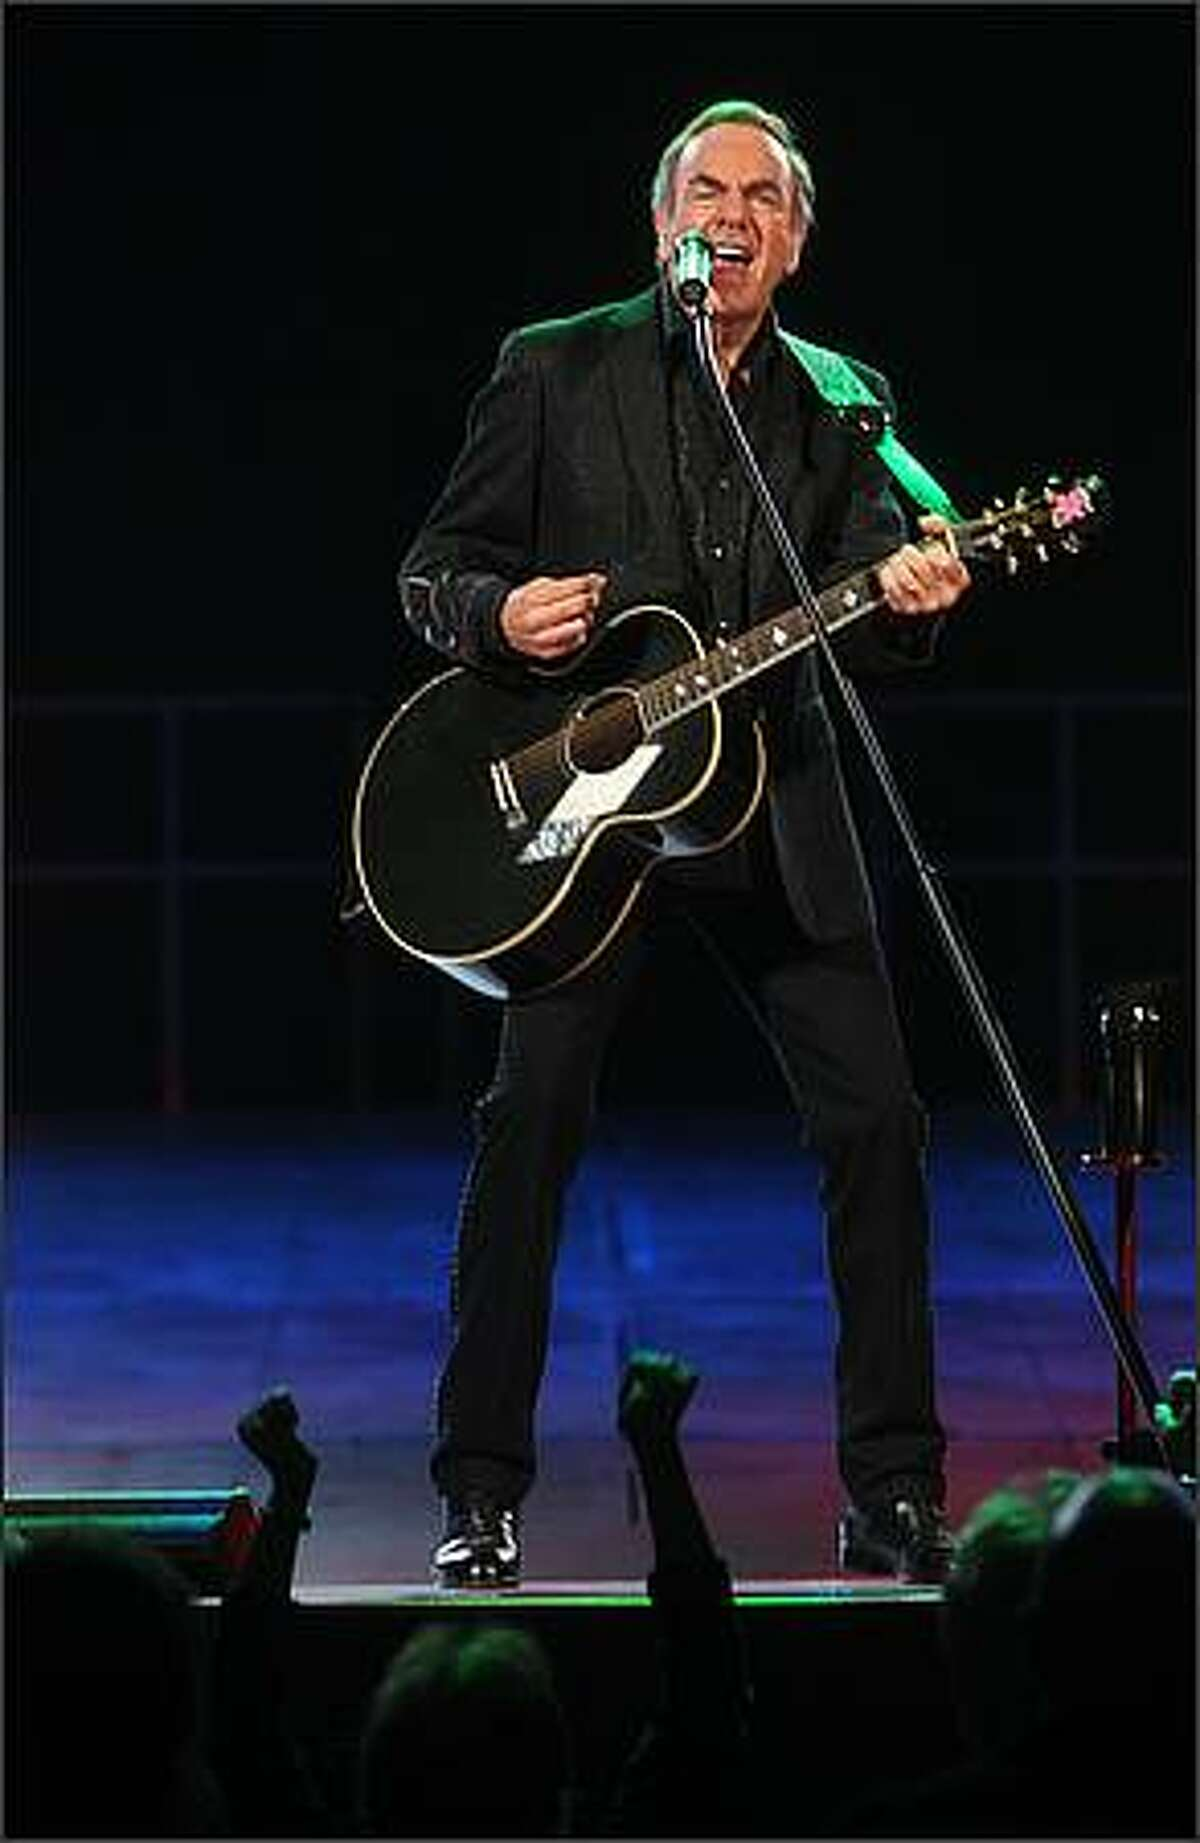 Neil Diamond performs at Key Arena in Seattle on Wednesday night.